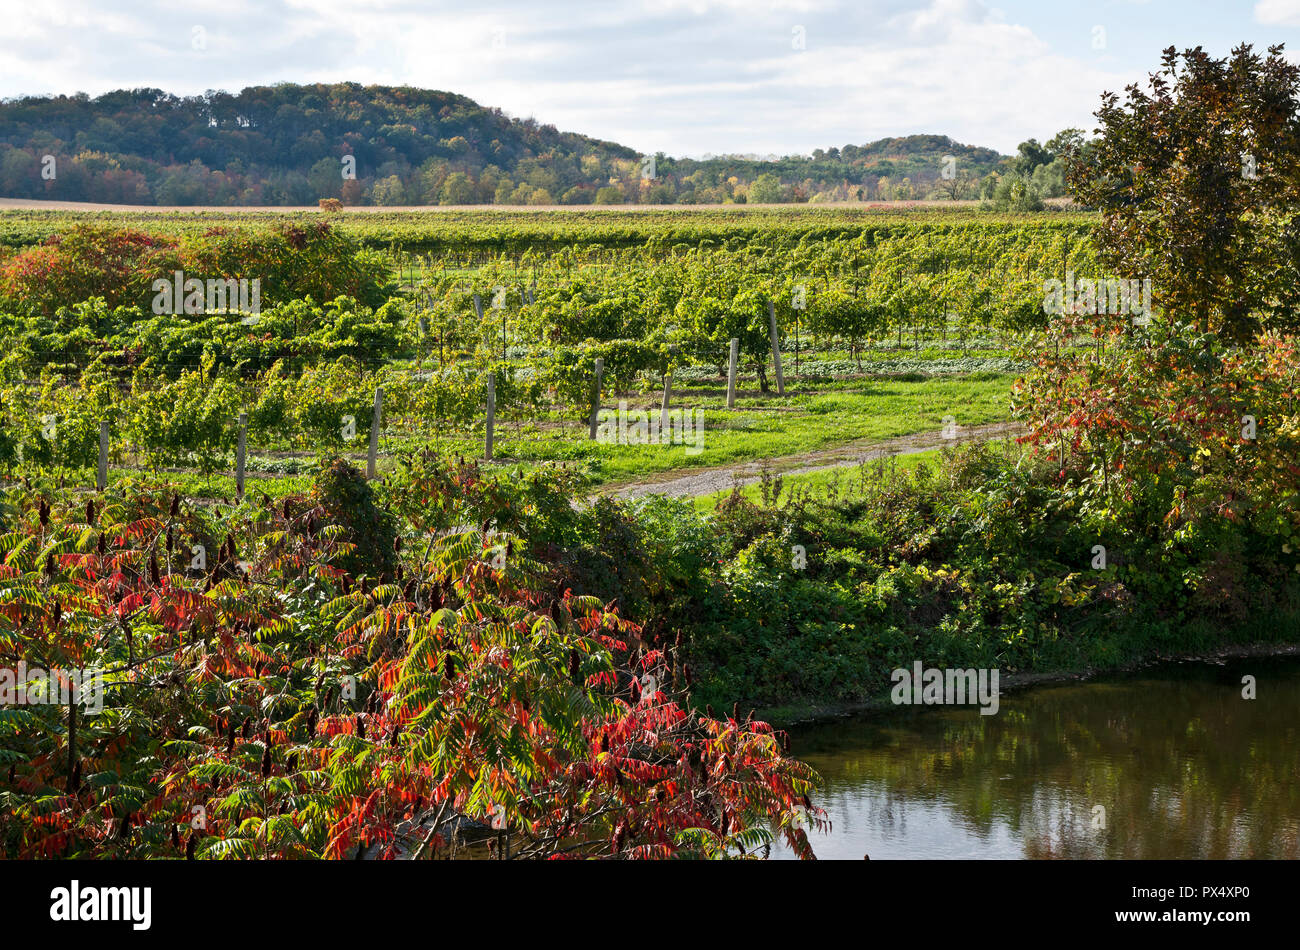 beautiful-vineyards-and-pond-near-beamsv